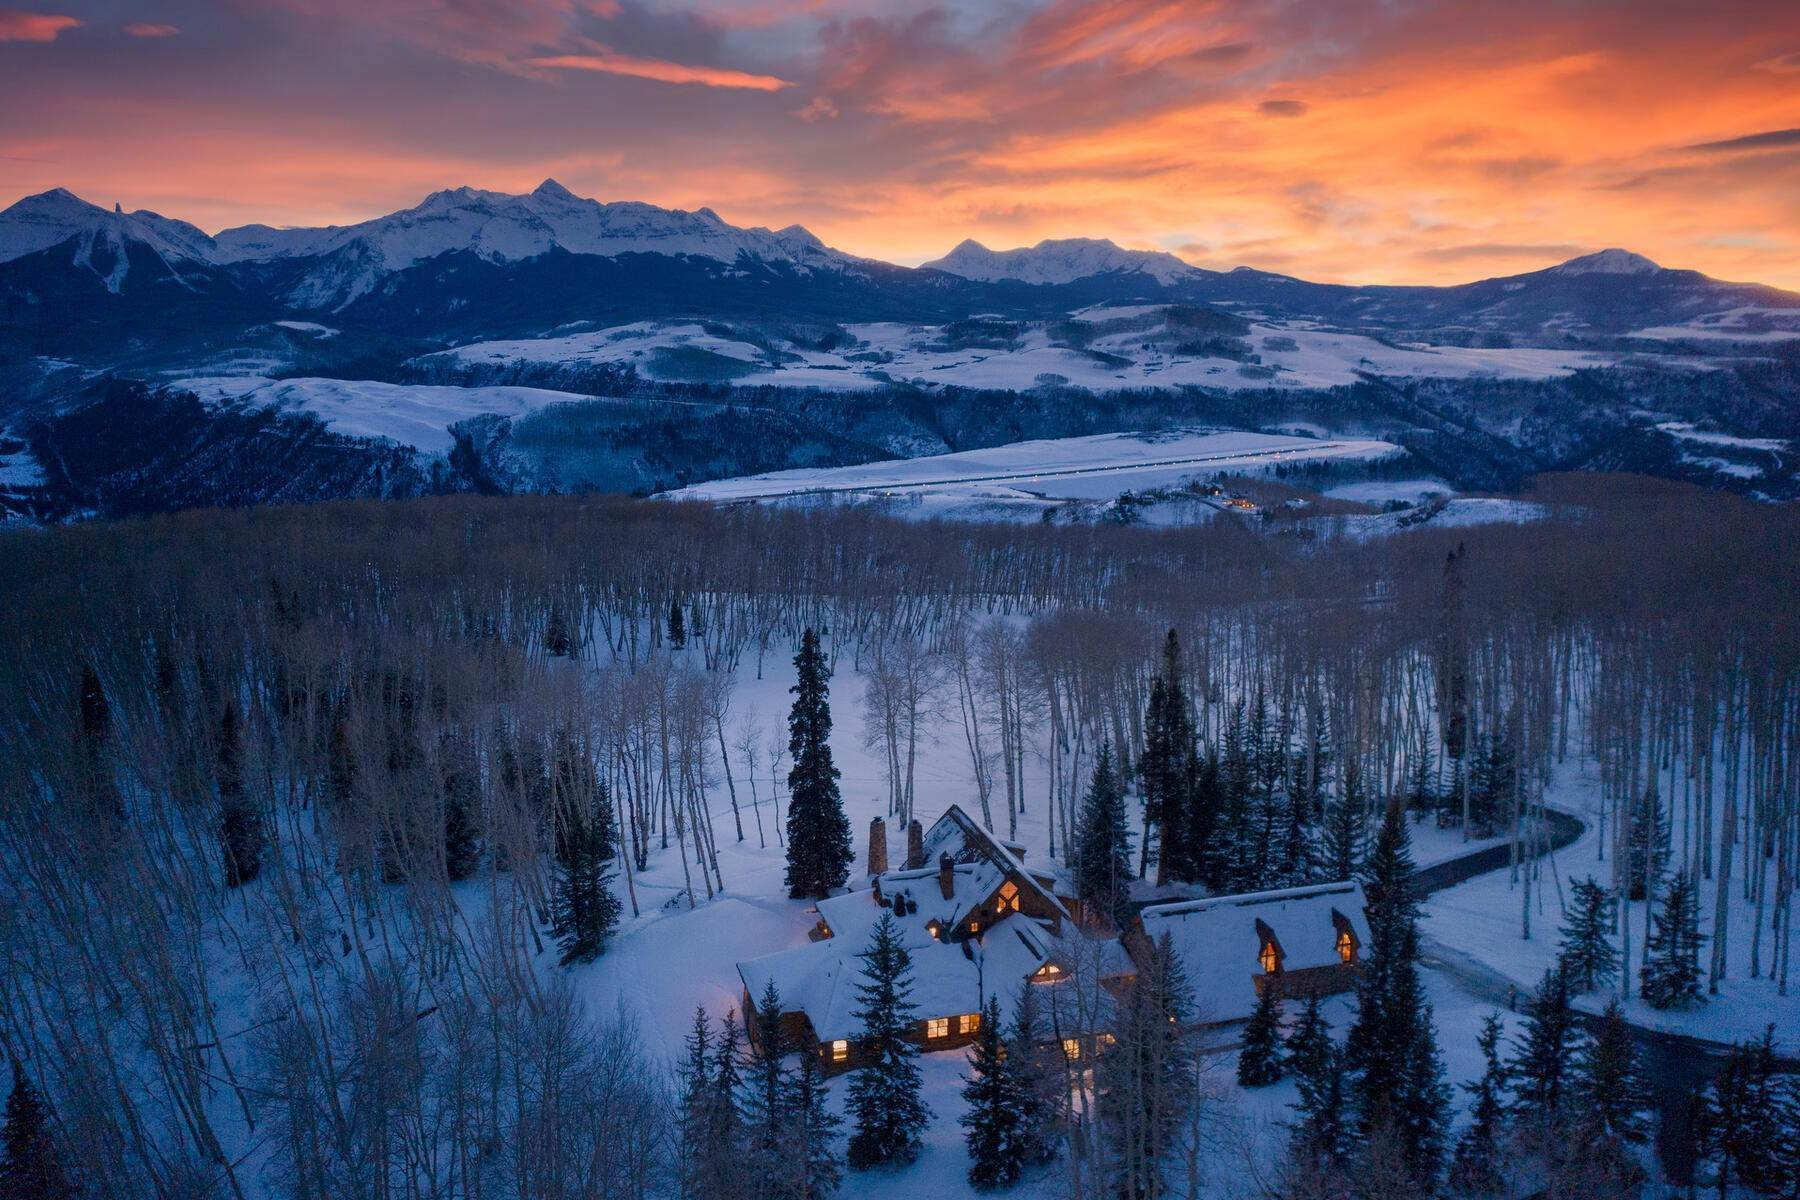 Single Family Homes for Sale at Luxury Meets Legend 115 Francisco Way Telluride, Colorado 81435 United States